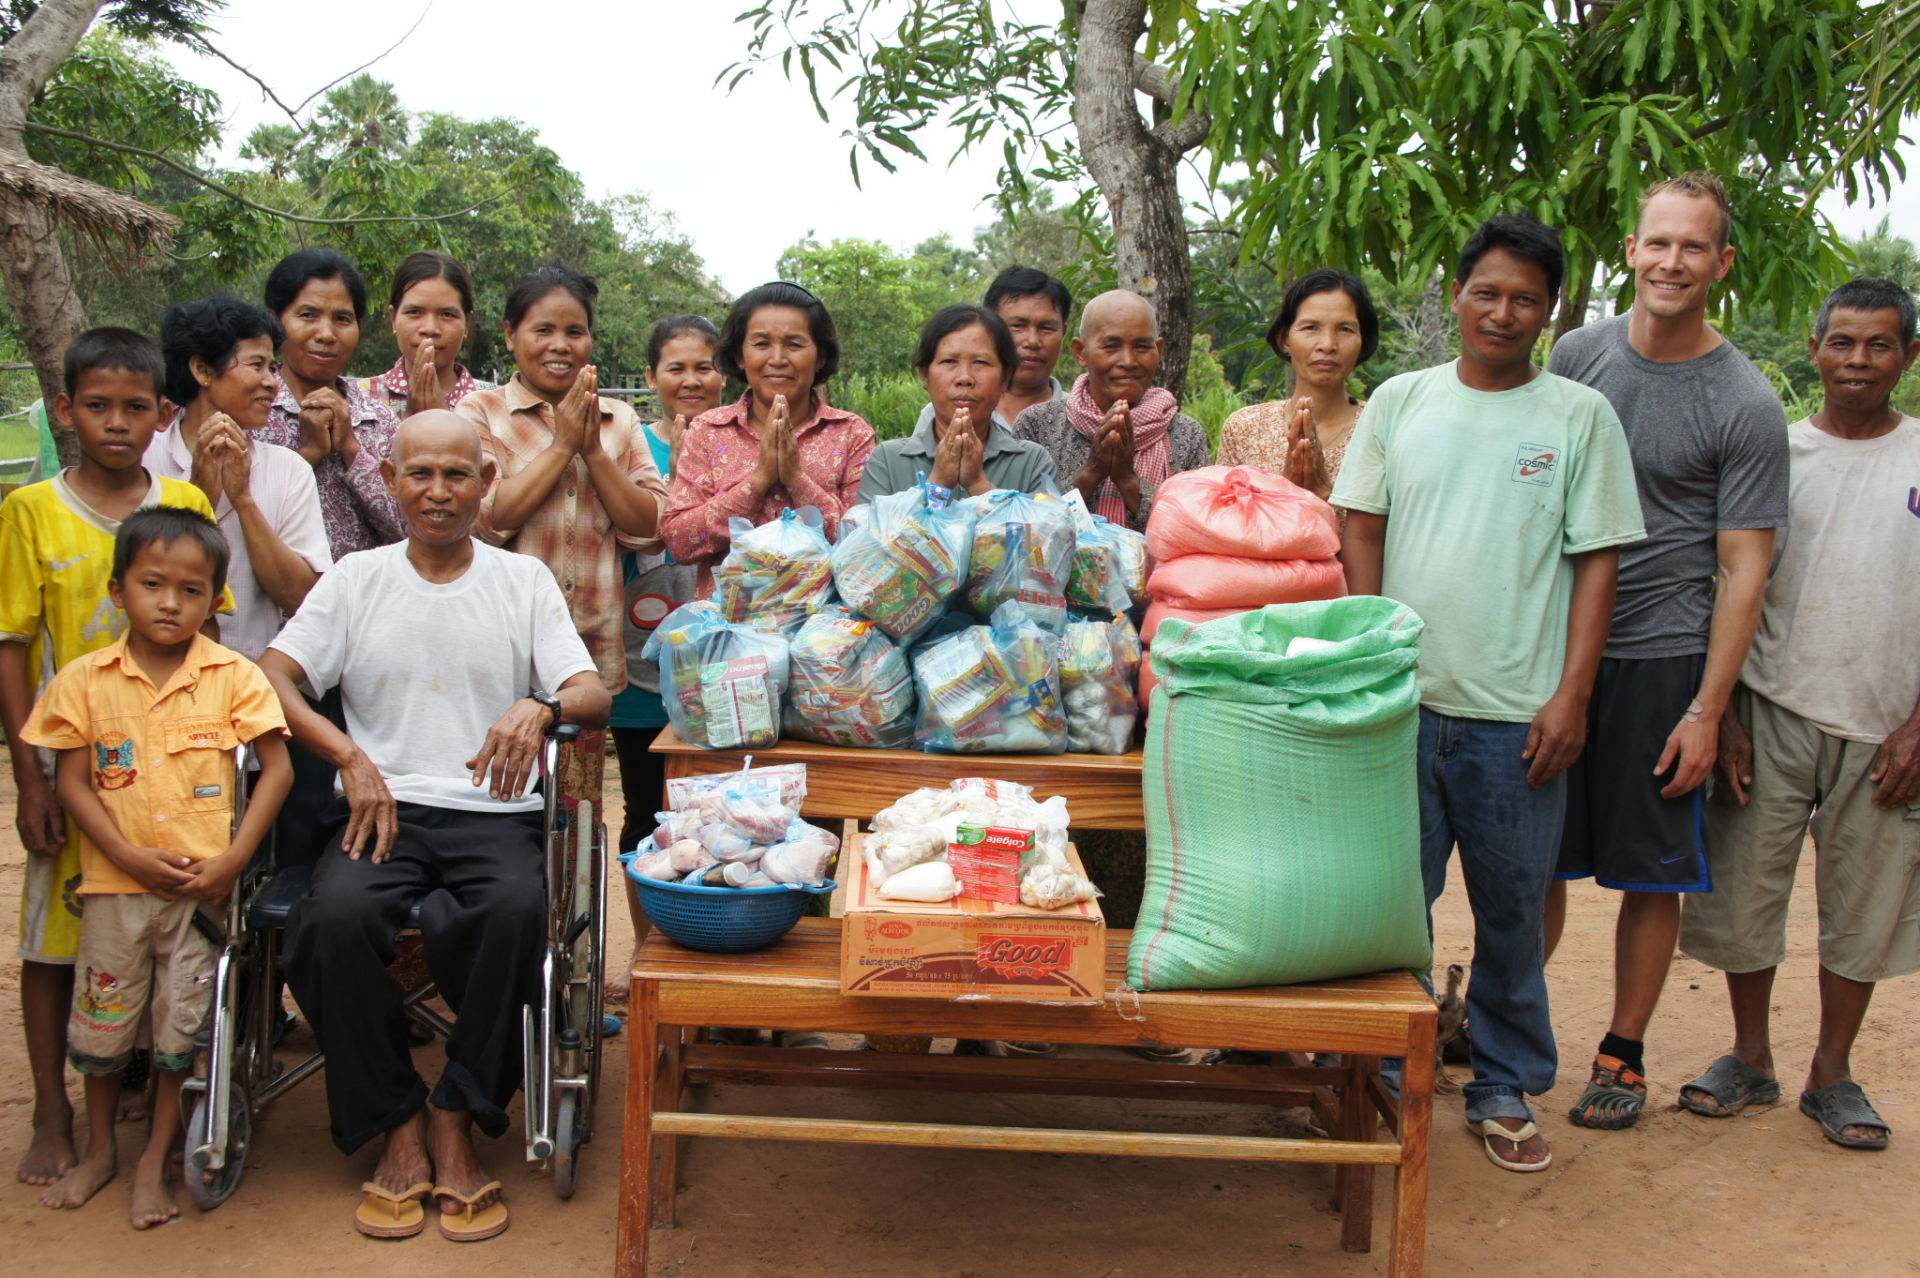 Giving food to 15 families an hour and a half outside of Siem Reap, Cambodia. It's amazing how they all work peacefully together to divide it all up evenly, making sure everyone gets an even share.